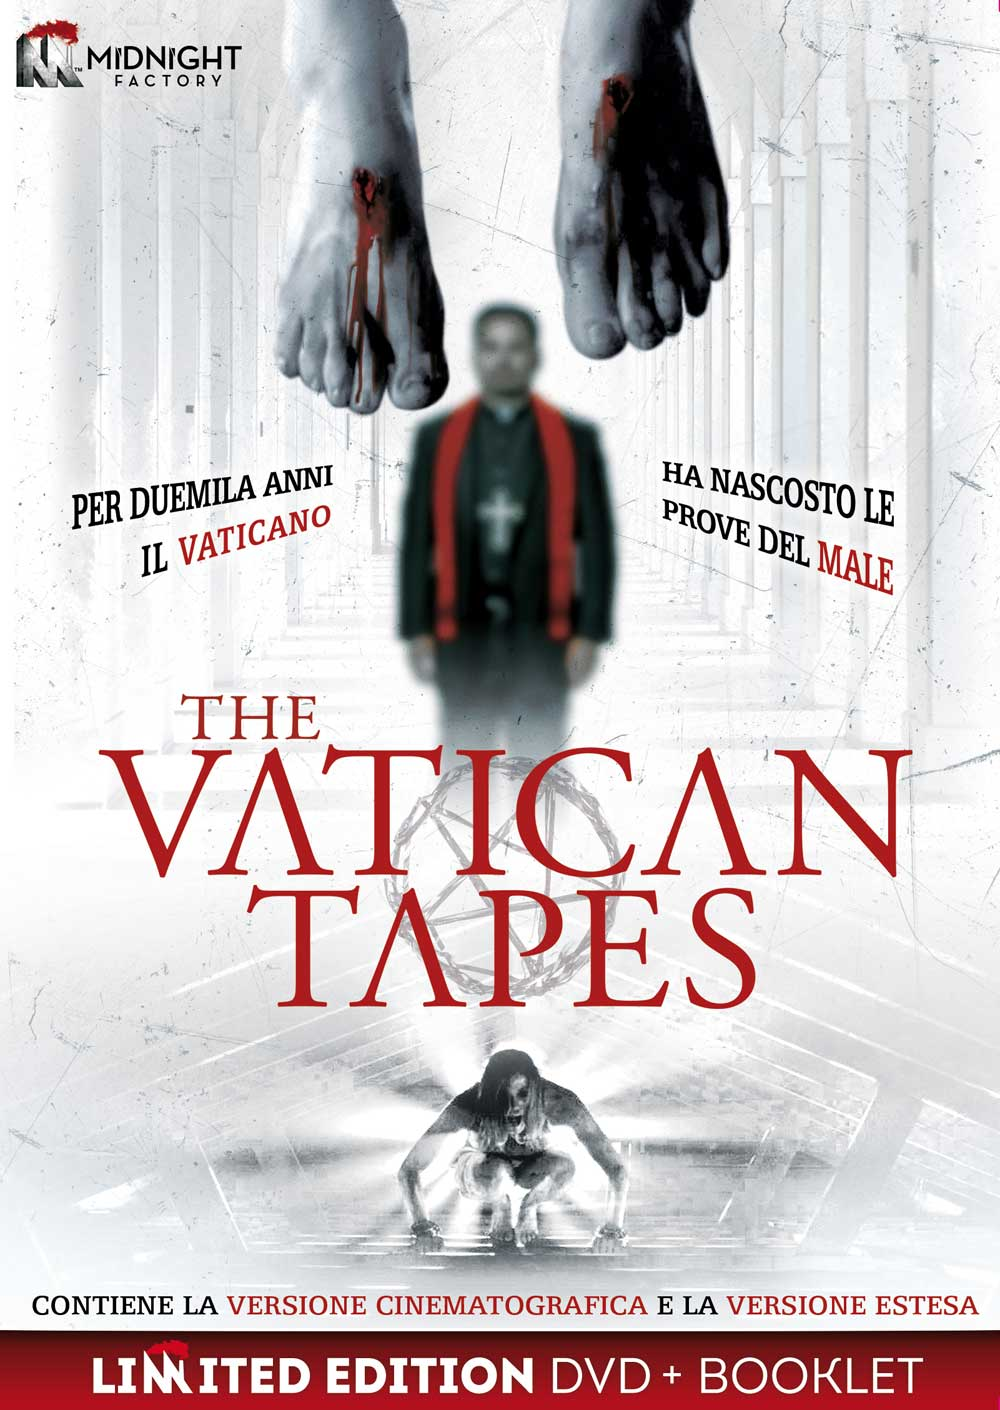 THE VATICAN TAPES (LTD) (DVD+BOOKLET) (DVD)